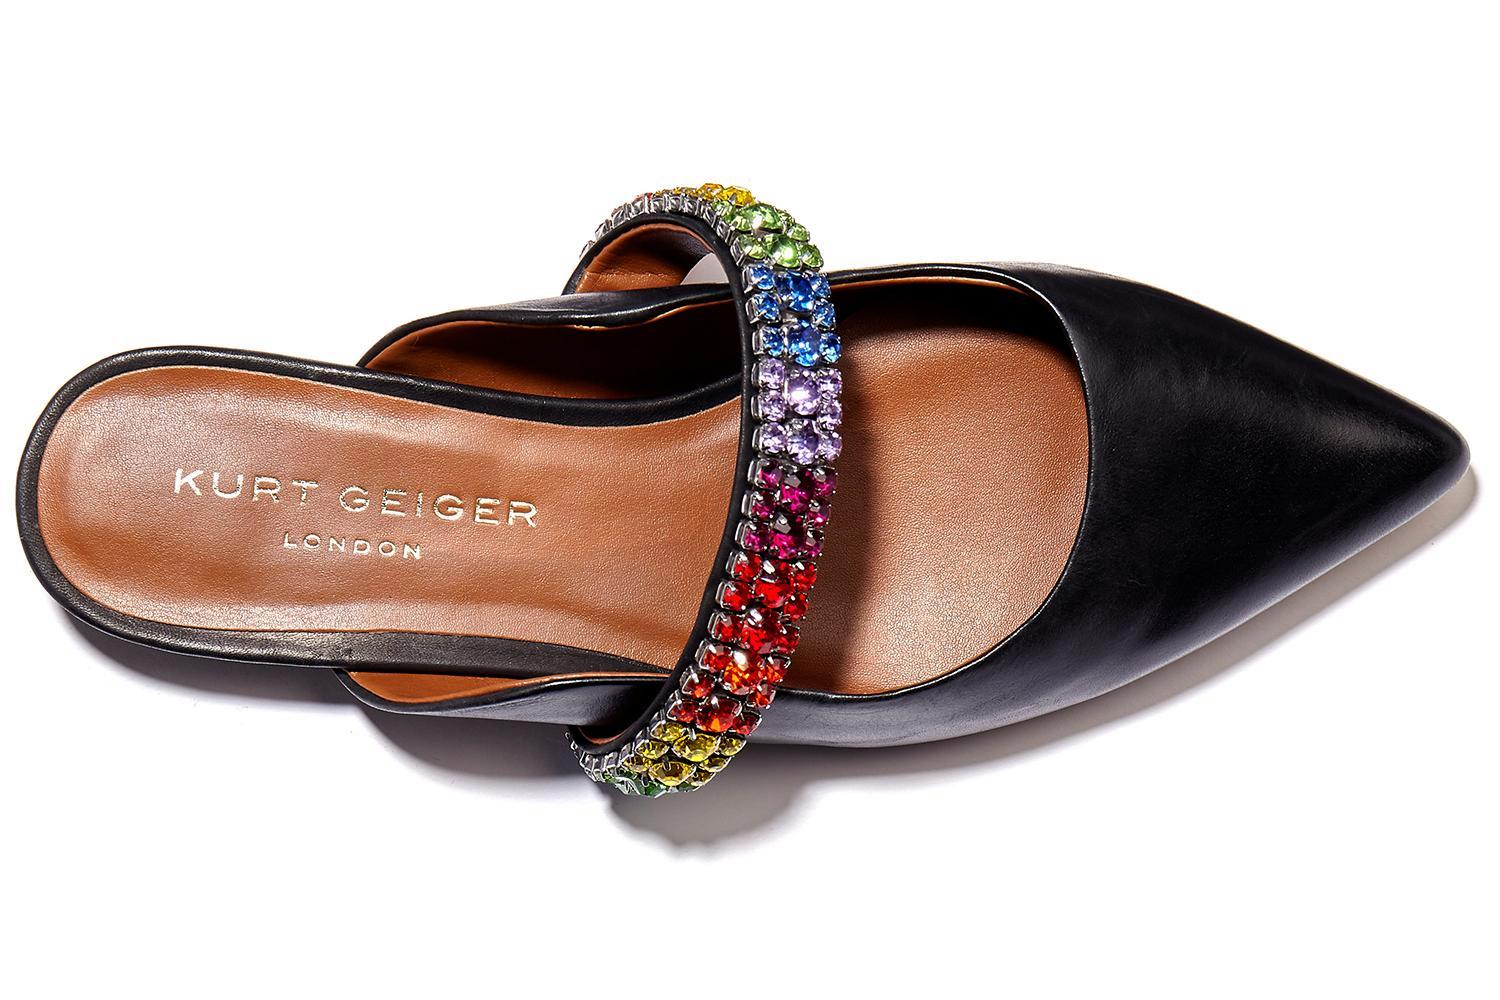 Shine bright this Christmas week with glitzy eyeshadow, rainbow flats and a party-perfect knit